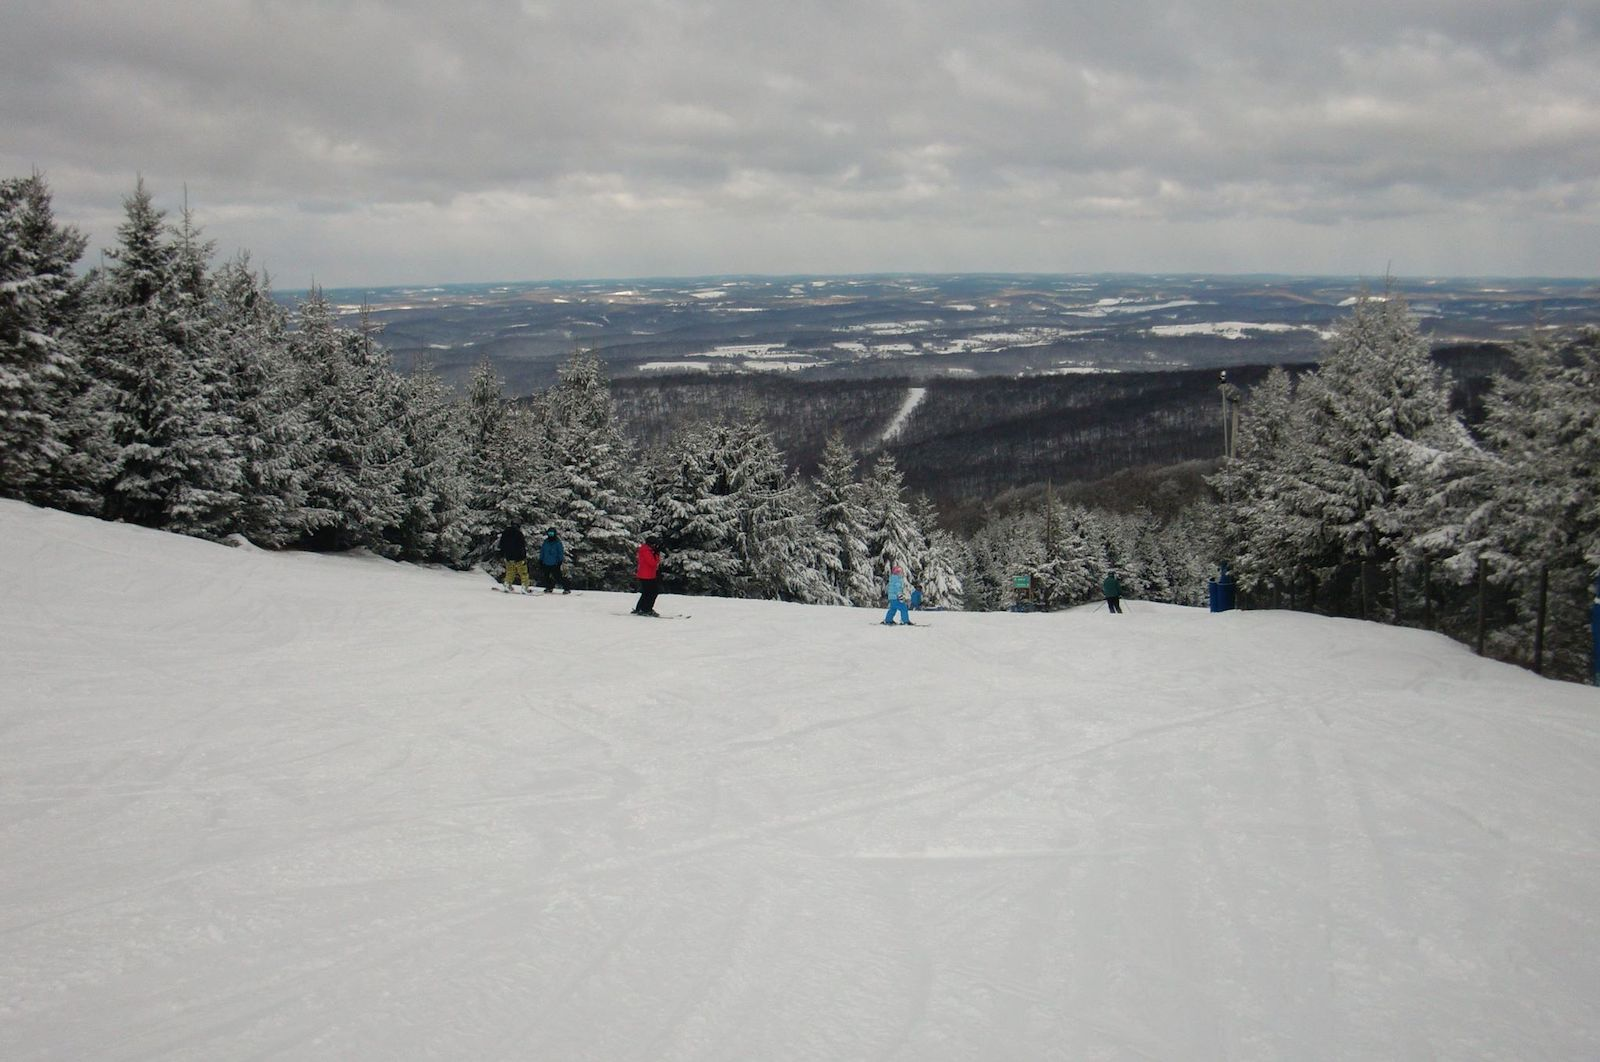 Image of skiers and snowboarders at Elk Mountain Resort in Pennsylvania